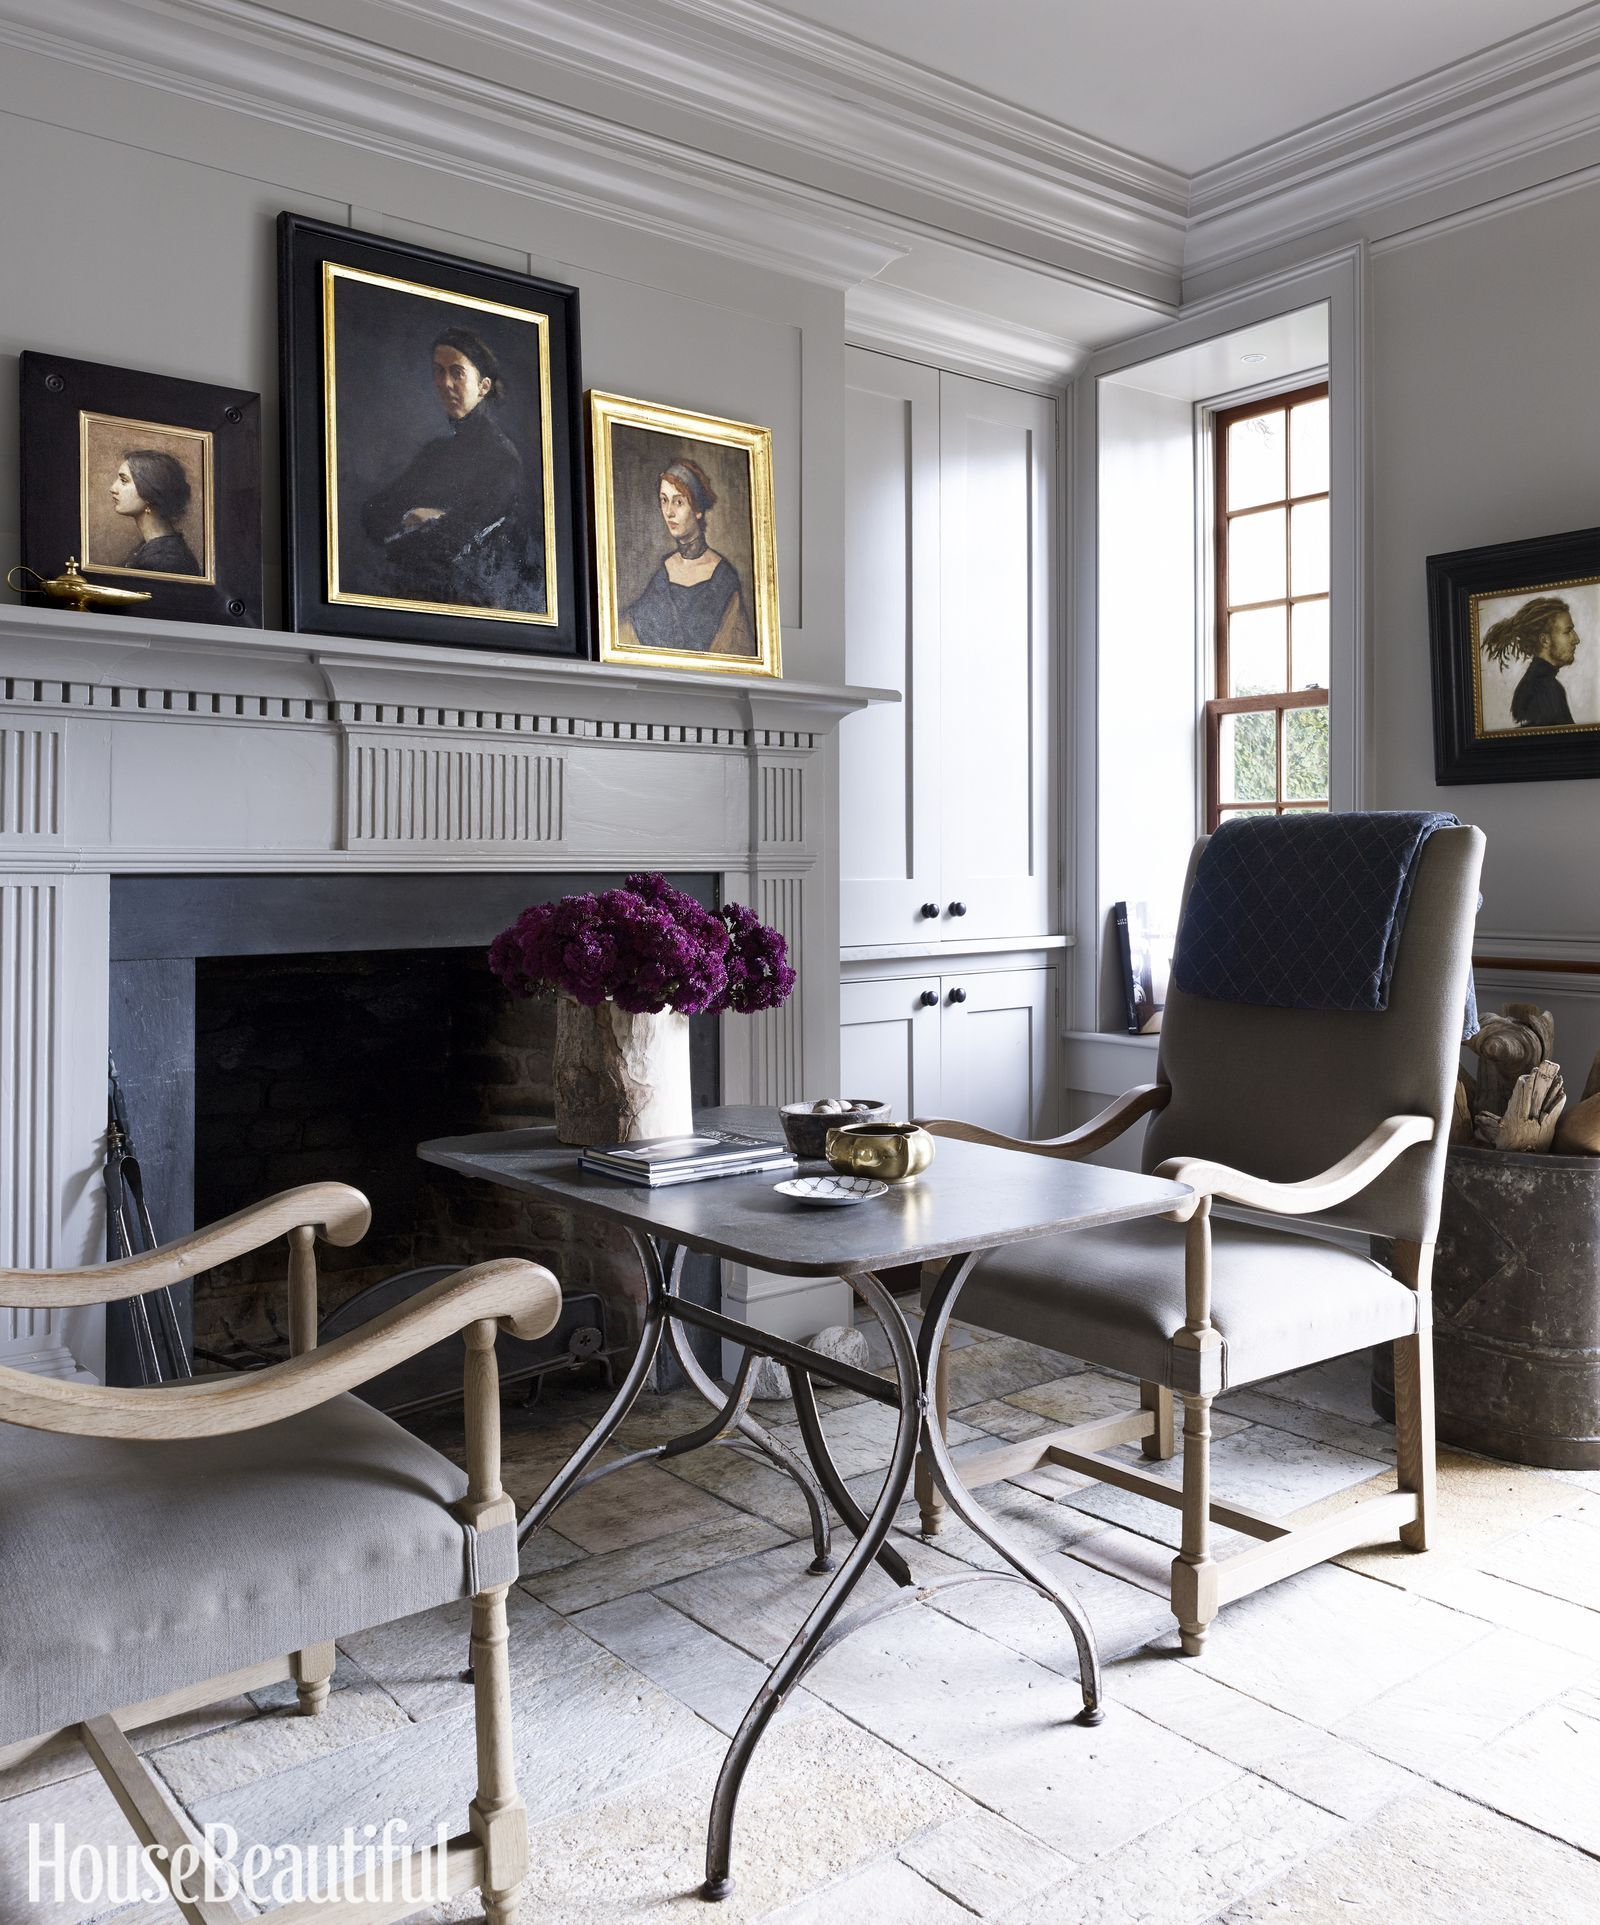 The 10 Best Neutral Paint Colors for